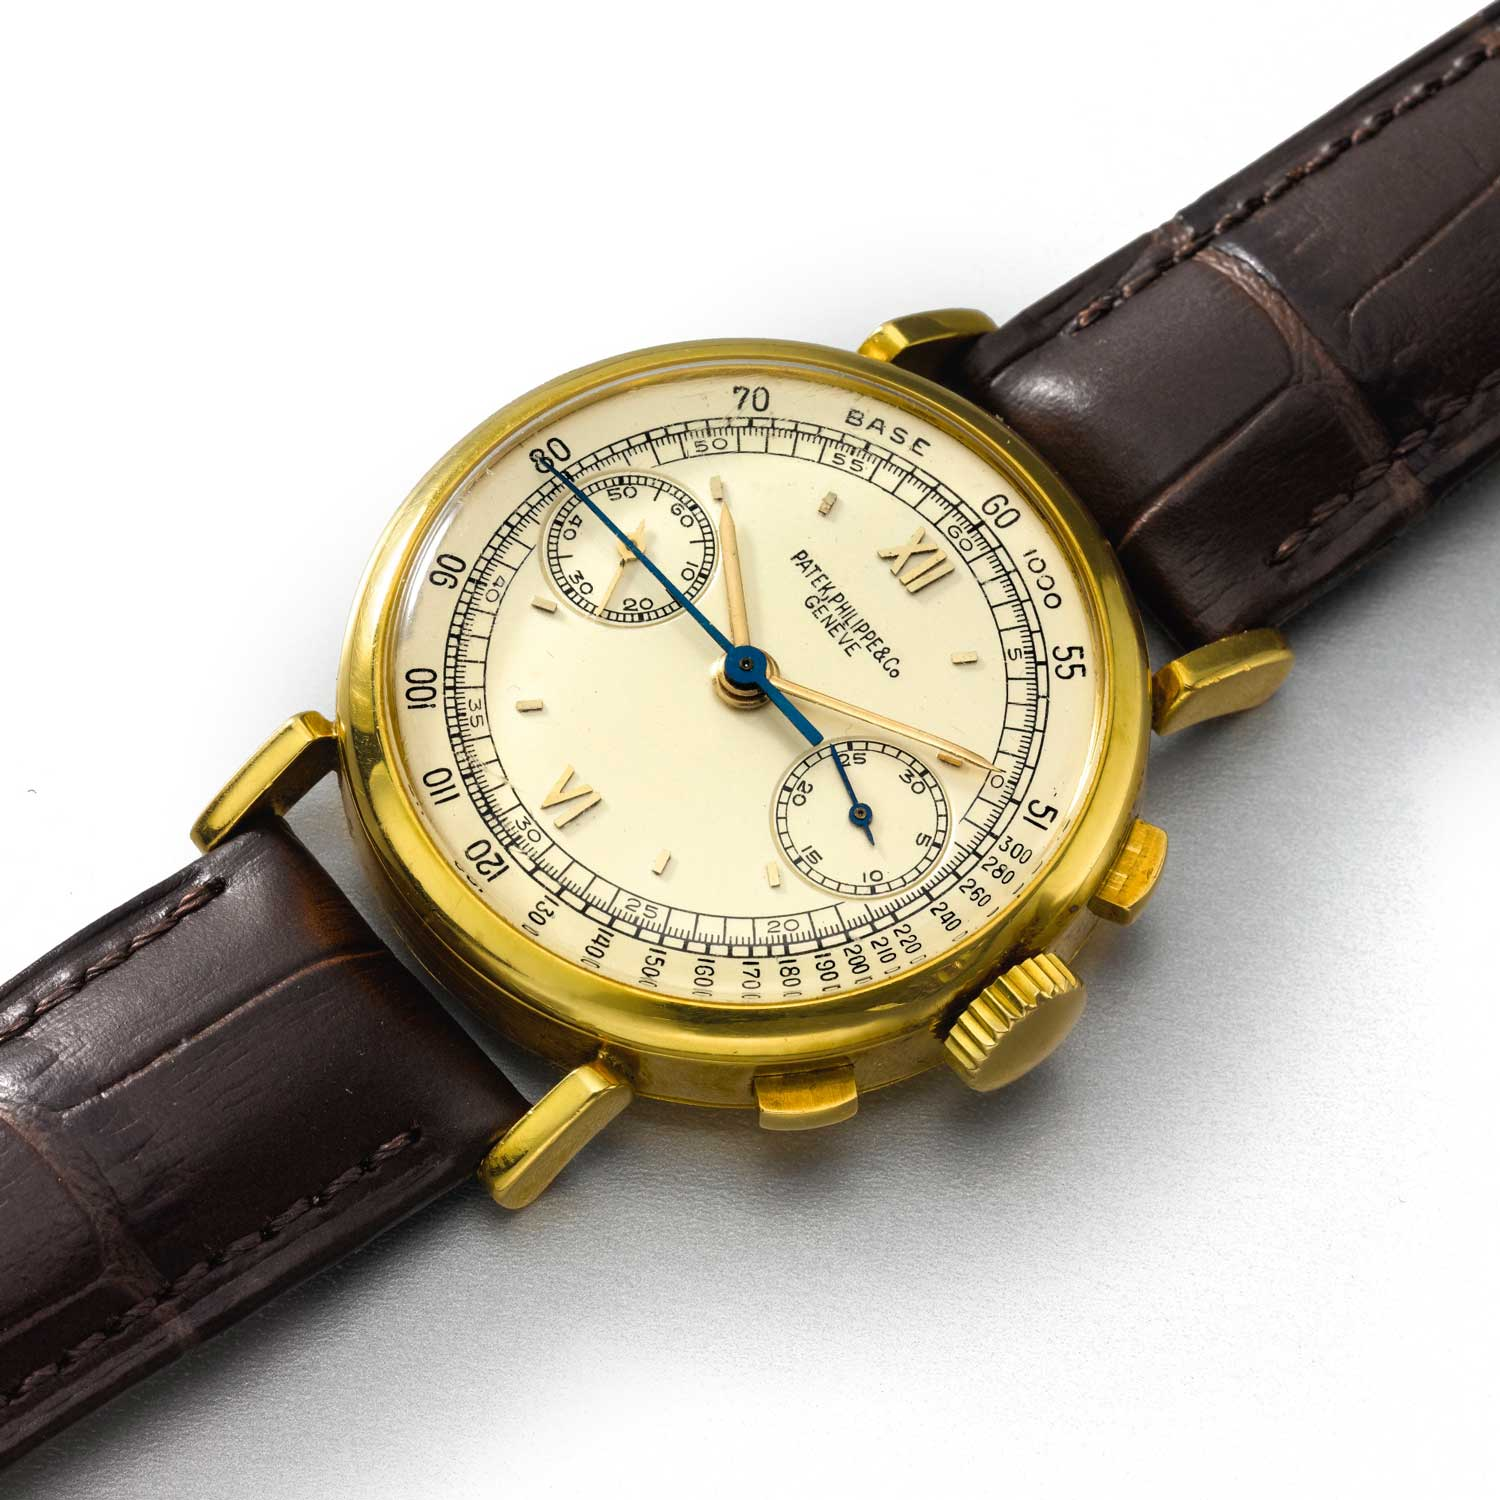 1943 Patek Philippe ref. 591 yellow gold chronograph with Roman numerals and tachymeter scale (Image: Sothebys.com)